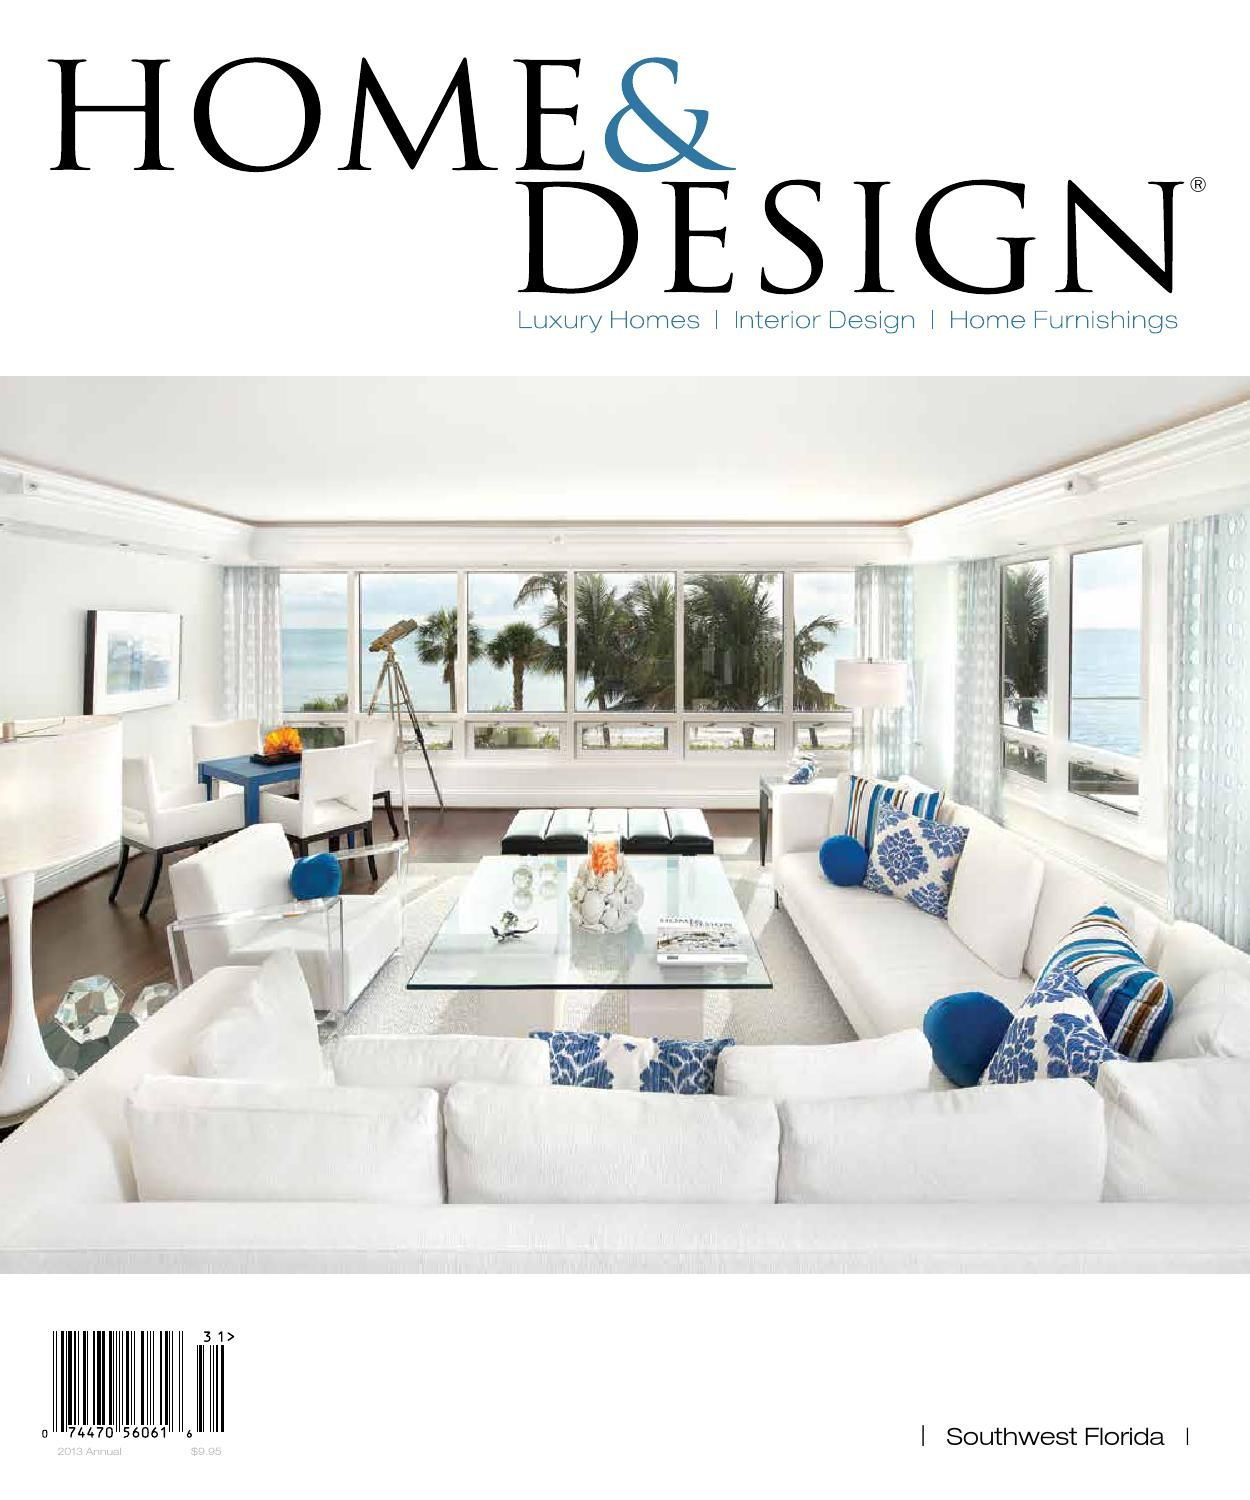 Find This Pin And More On For The Home. Home And Design Magazine Naples Fl  ...